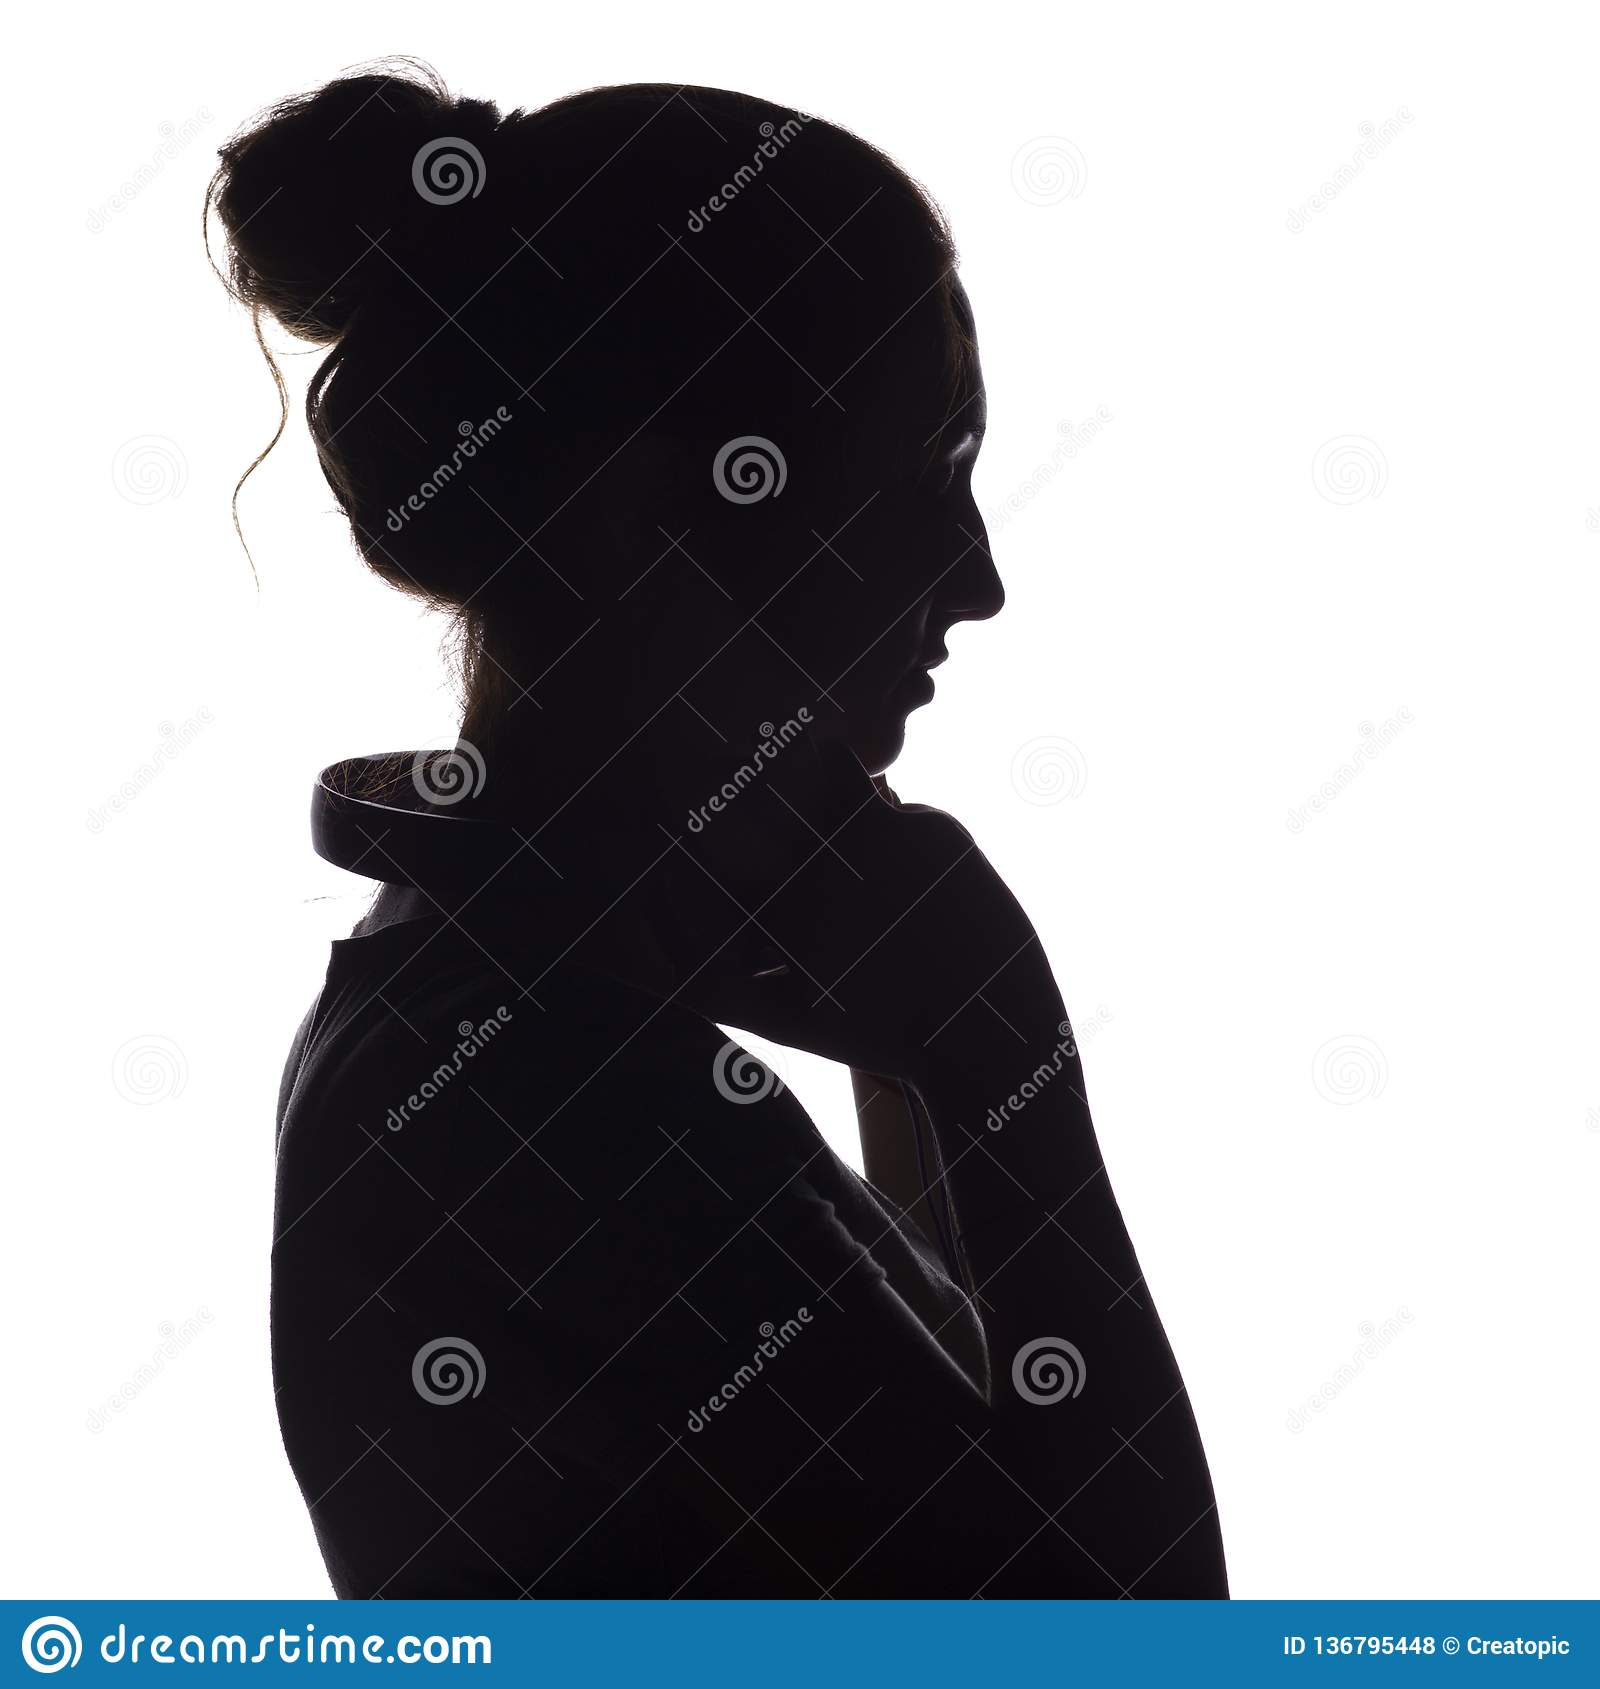 Silhouette of a girl with with headphones around neck, a young woman listening to music on a white isolated background, concept of